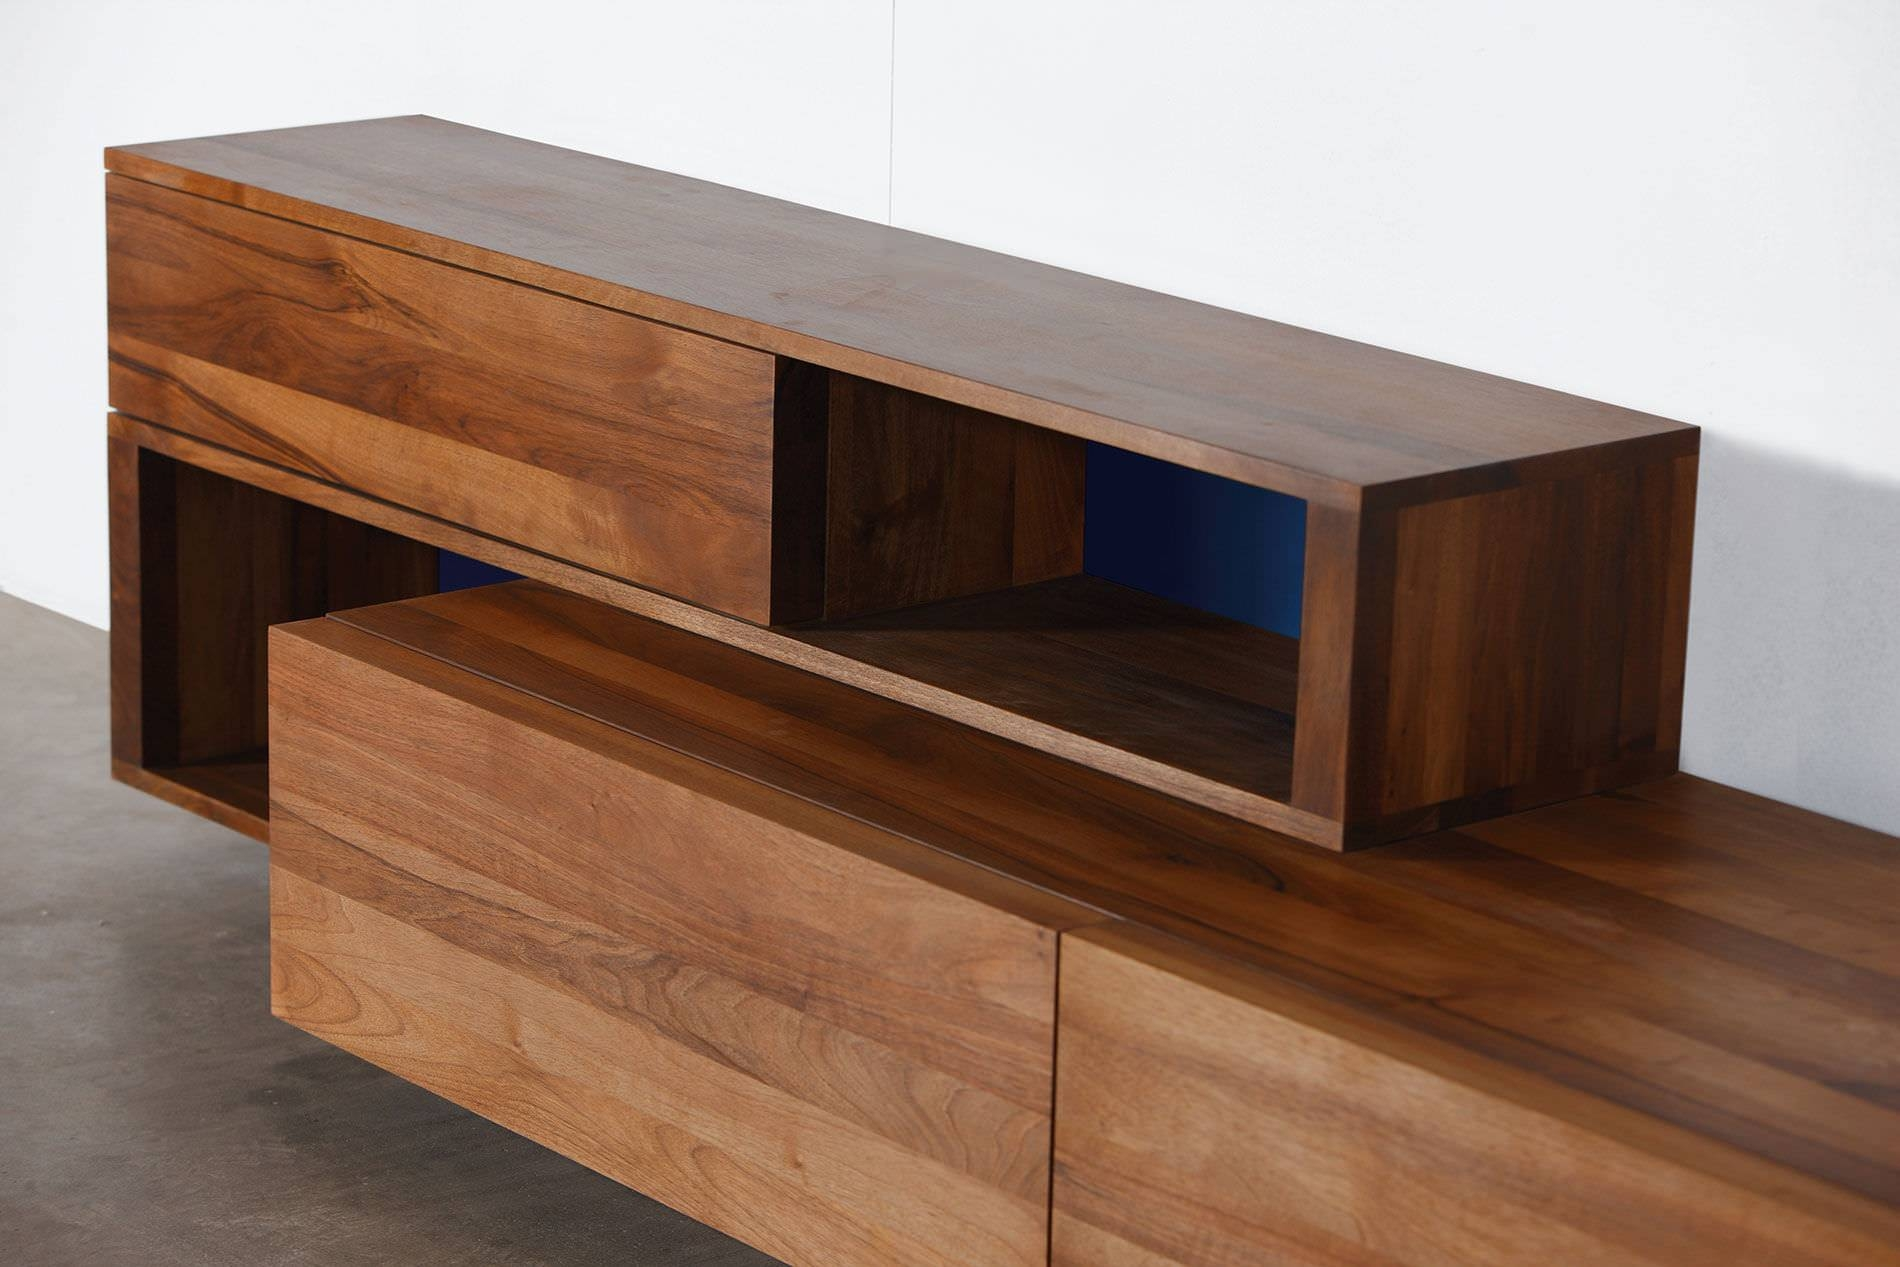 Contemporary Sideboard / Oak / Walnut / Solid Wood - Log regarding Contemporary Wood Sideboards (Image 5 of 30)